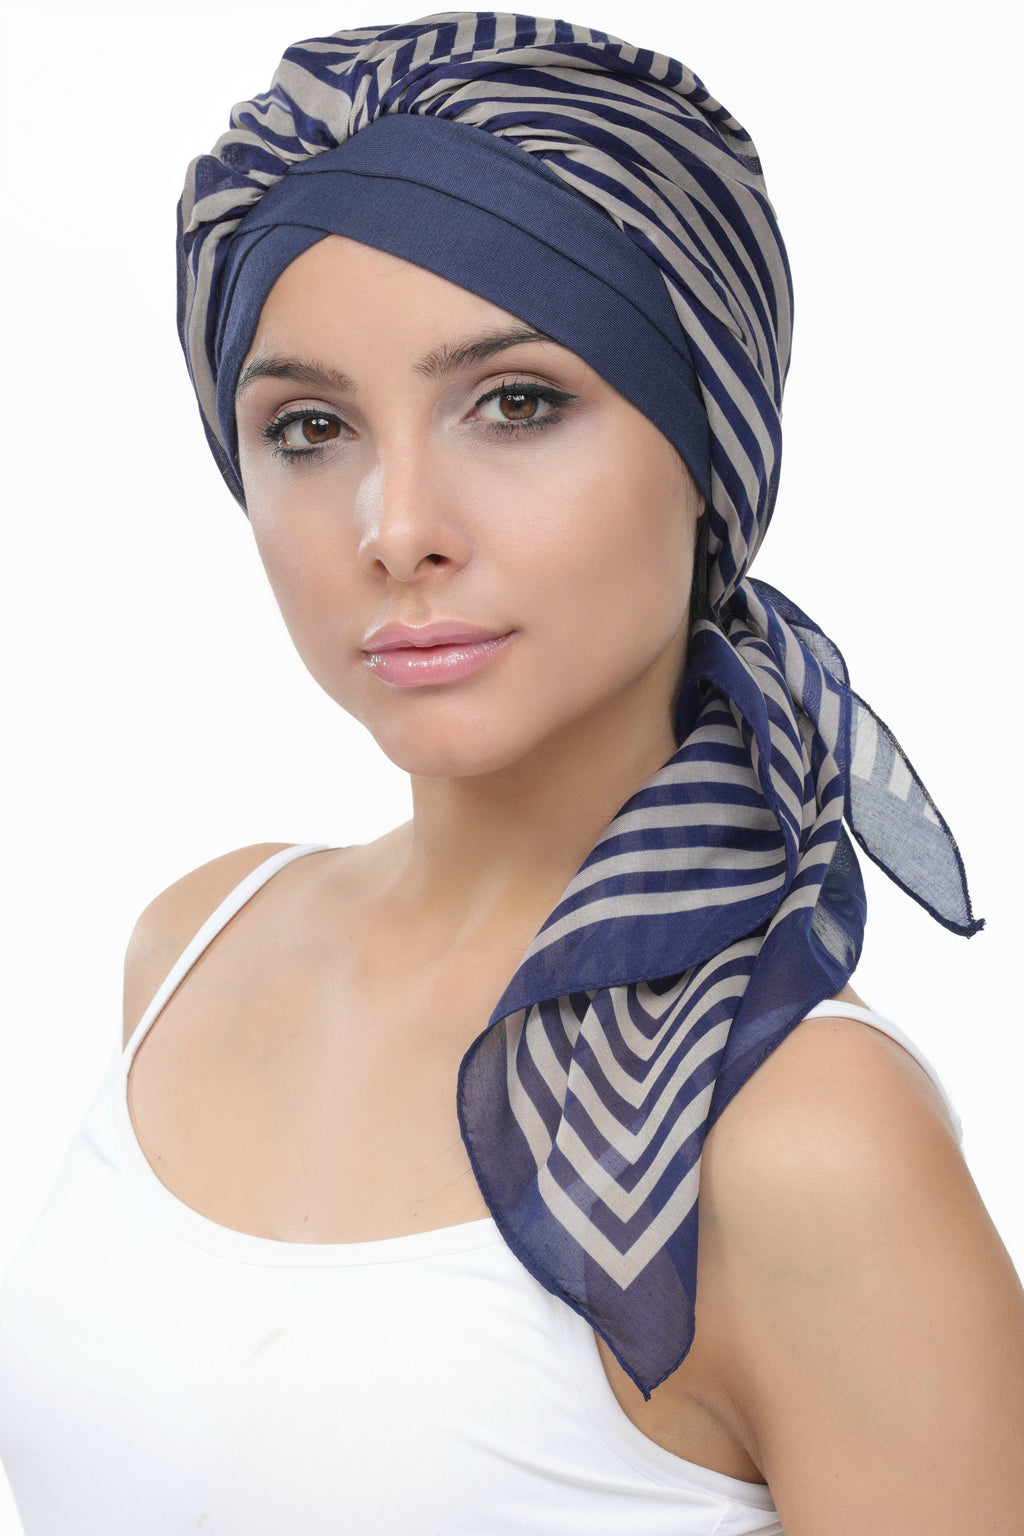 Deresina W cap with attached chemo headscarf style32 denim mink